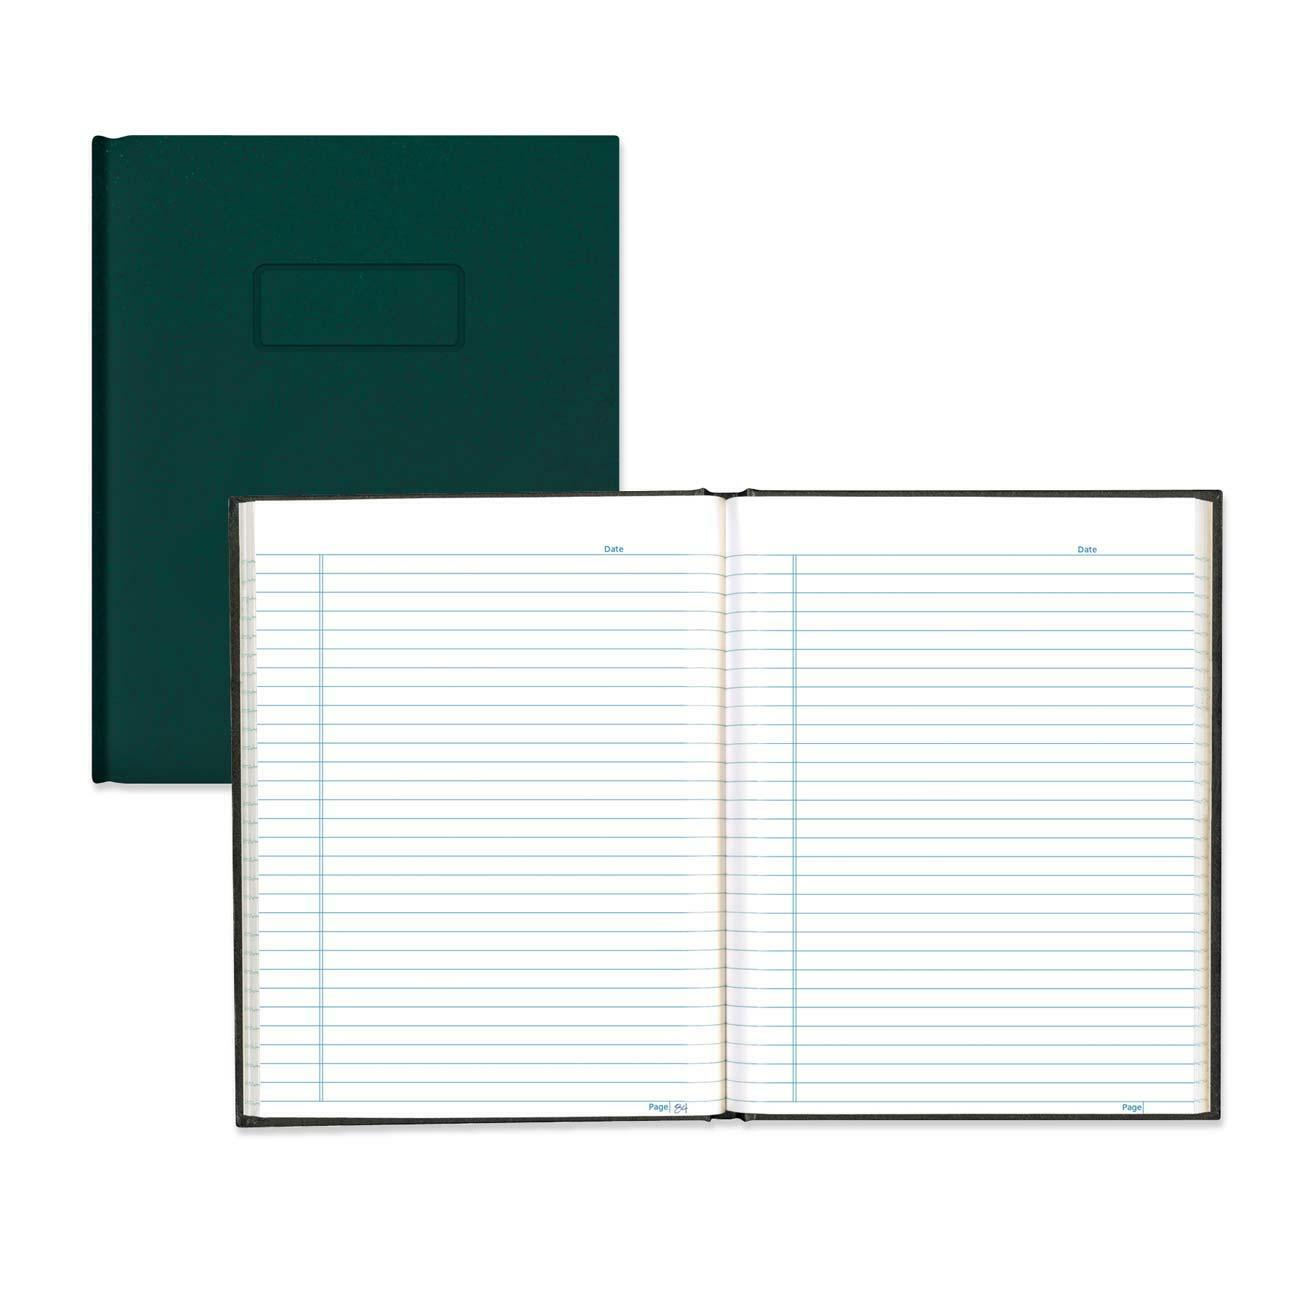 Rediform office products subject wirebound notebook wide - Blueline College Ruled Composition Book 192 Sheets Perfect Bound Blue Margin 9 1 4 X 7 1 4 White Paper Green Cover Hard Cover Self Adhesive